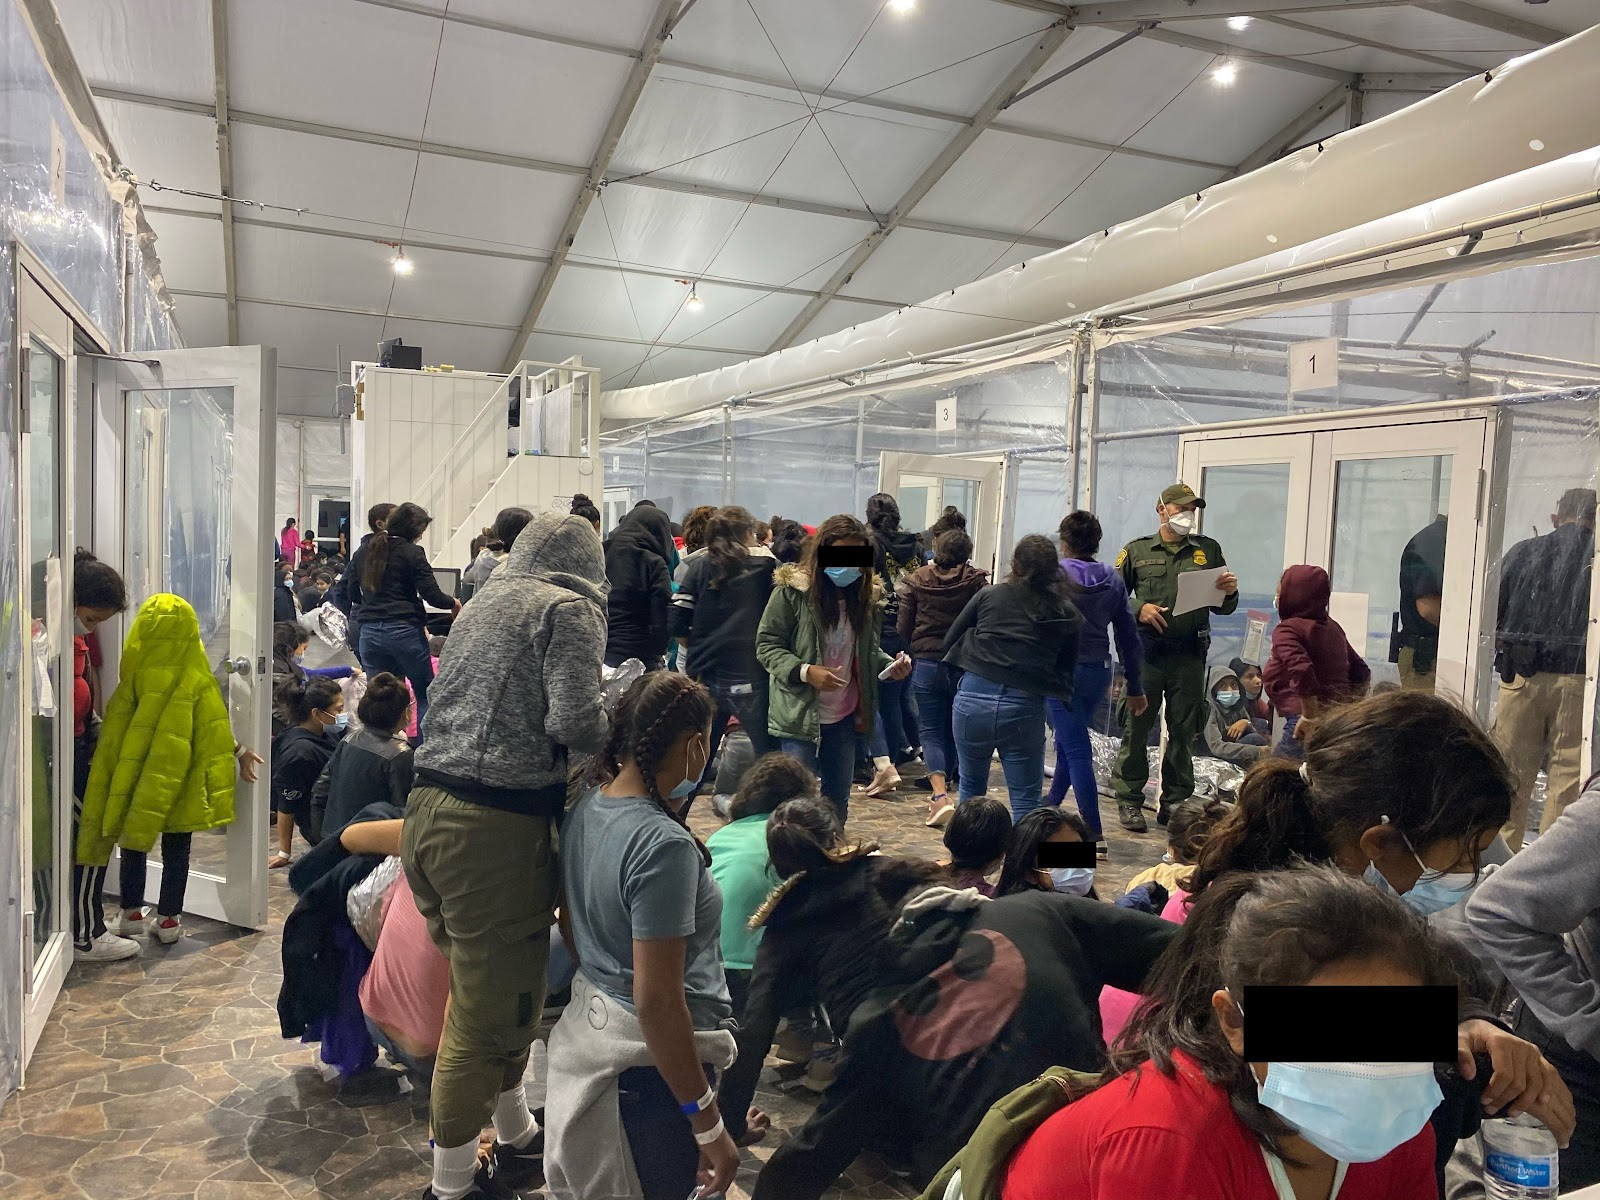 Images showing migrants in close quarters at the temporary Donna Immigration Facility in Texas. Positive COVID-19 cases, as well as sexual and physical assaults were reported by whistle blowers